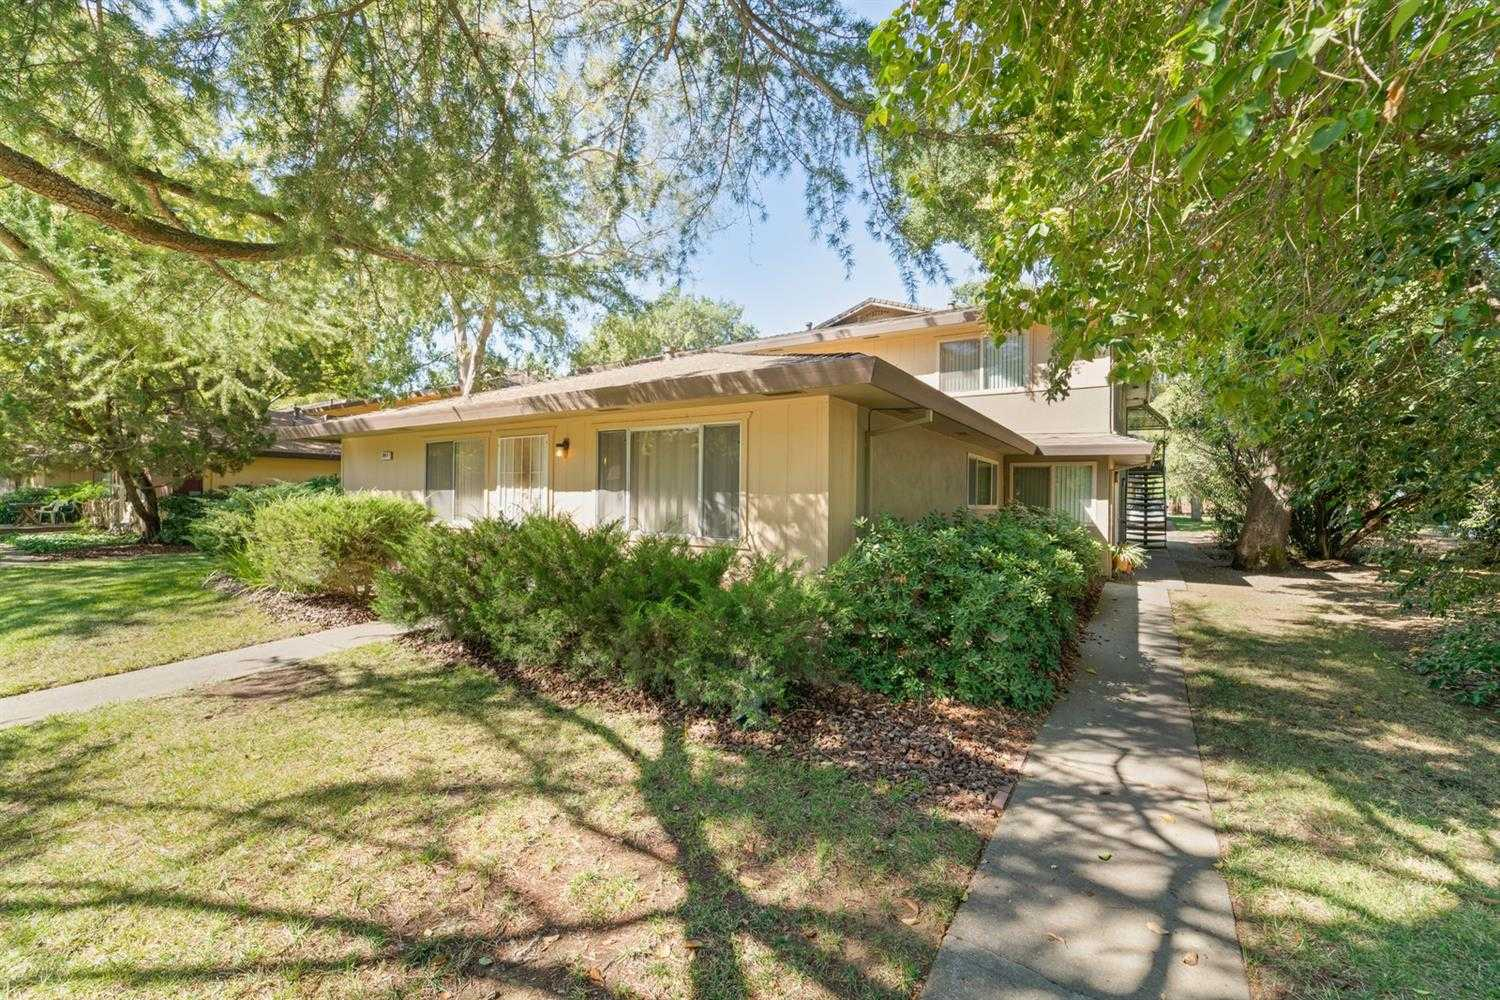 $285,000 - 2Br/1Ba -  for Sale in Davis